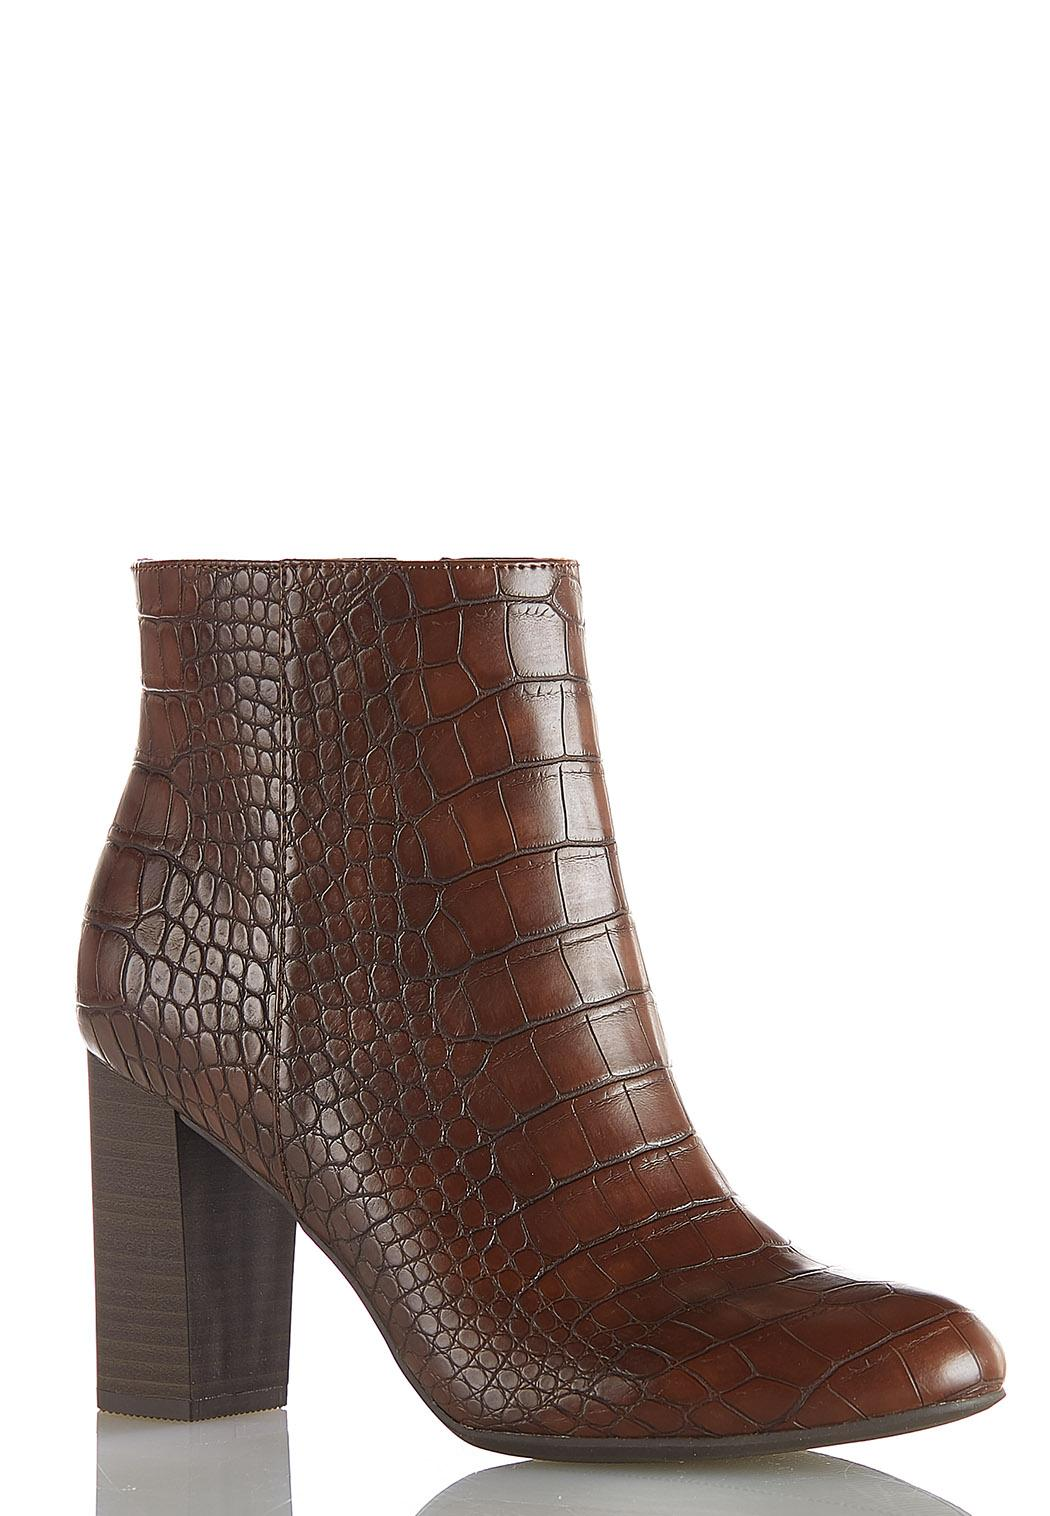 Croc Textured Ankle Boots